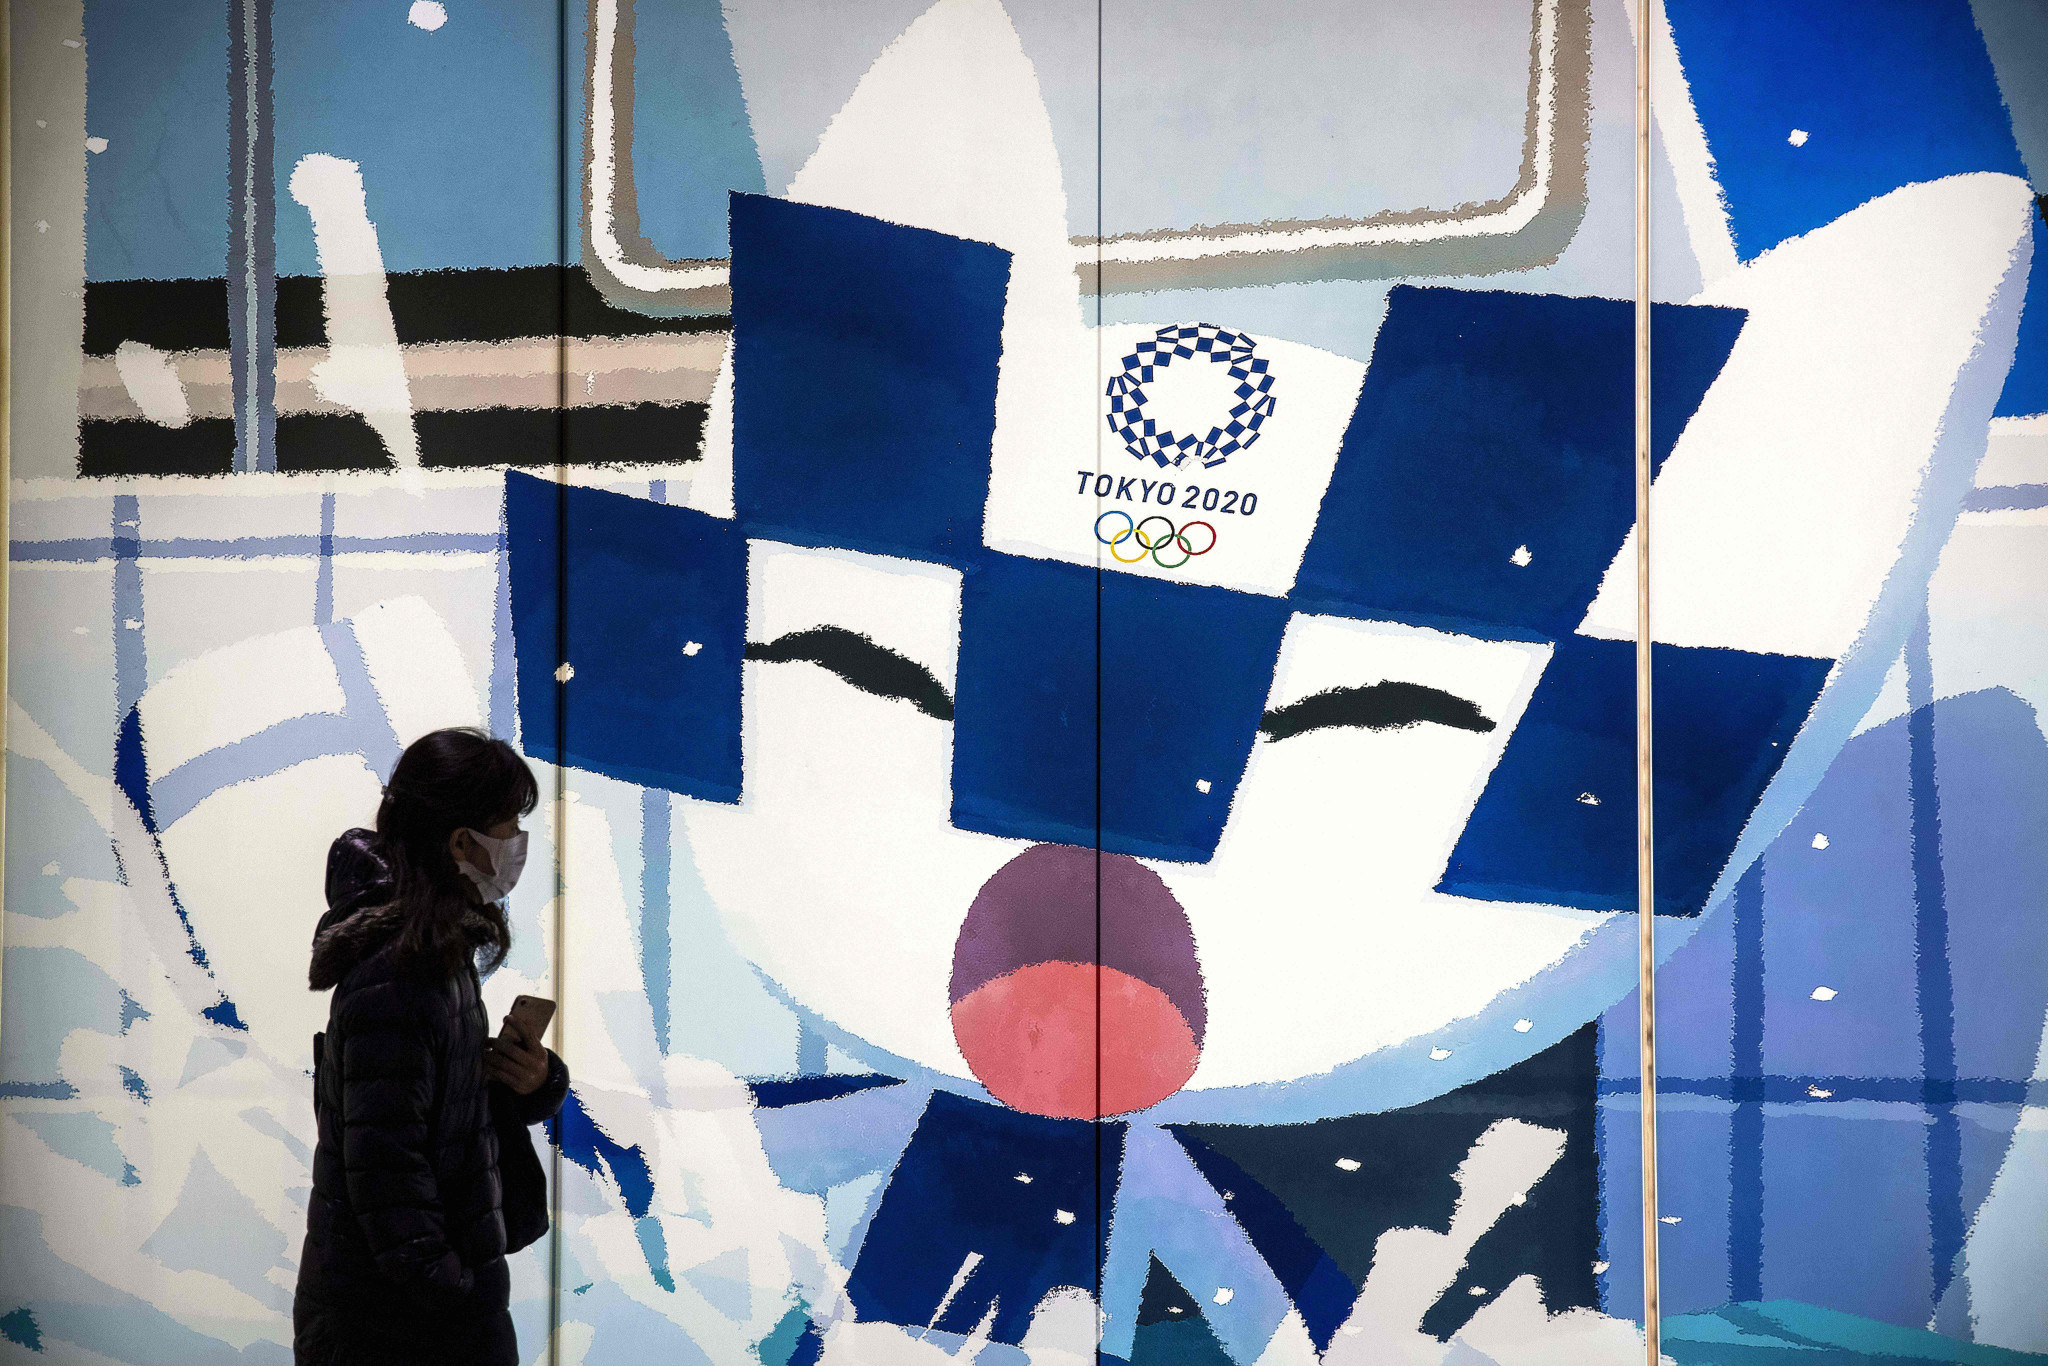 Tokyo 2020 will be among the key topics discussed by the IOC Executive Board tomorrow ©Getty Images